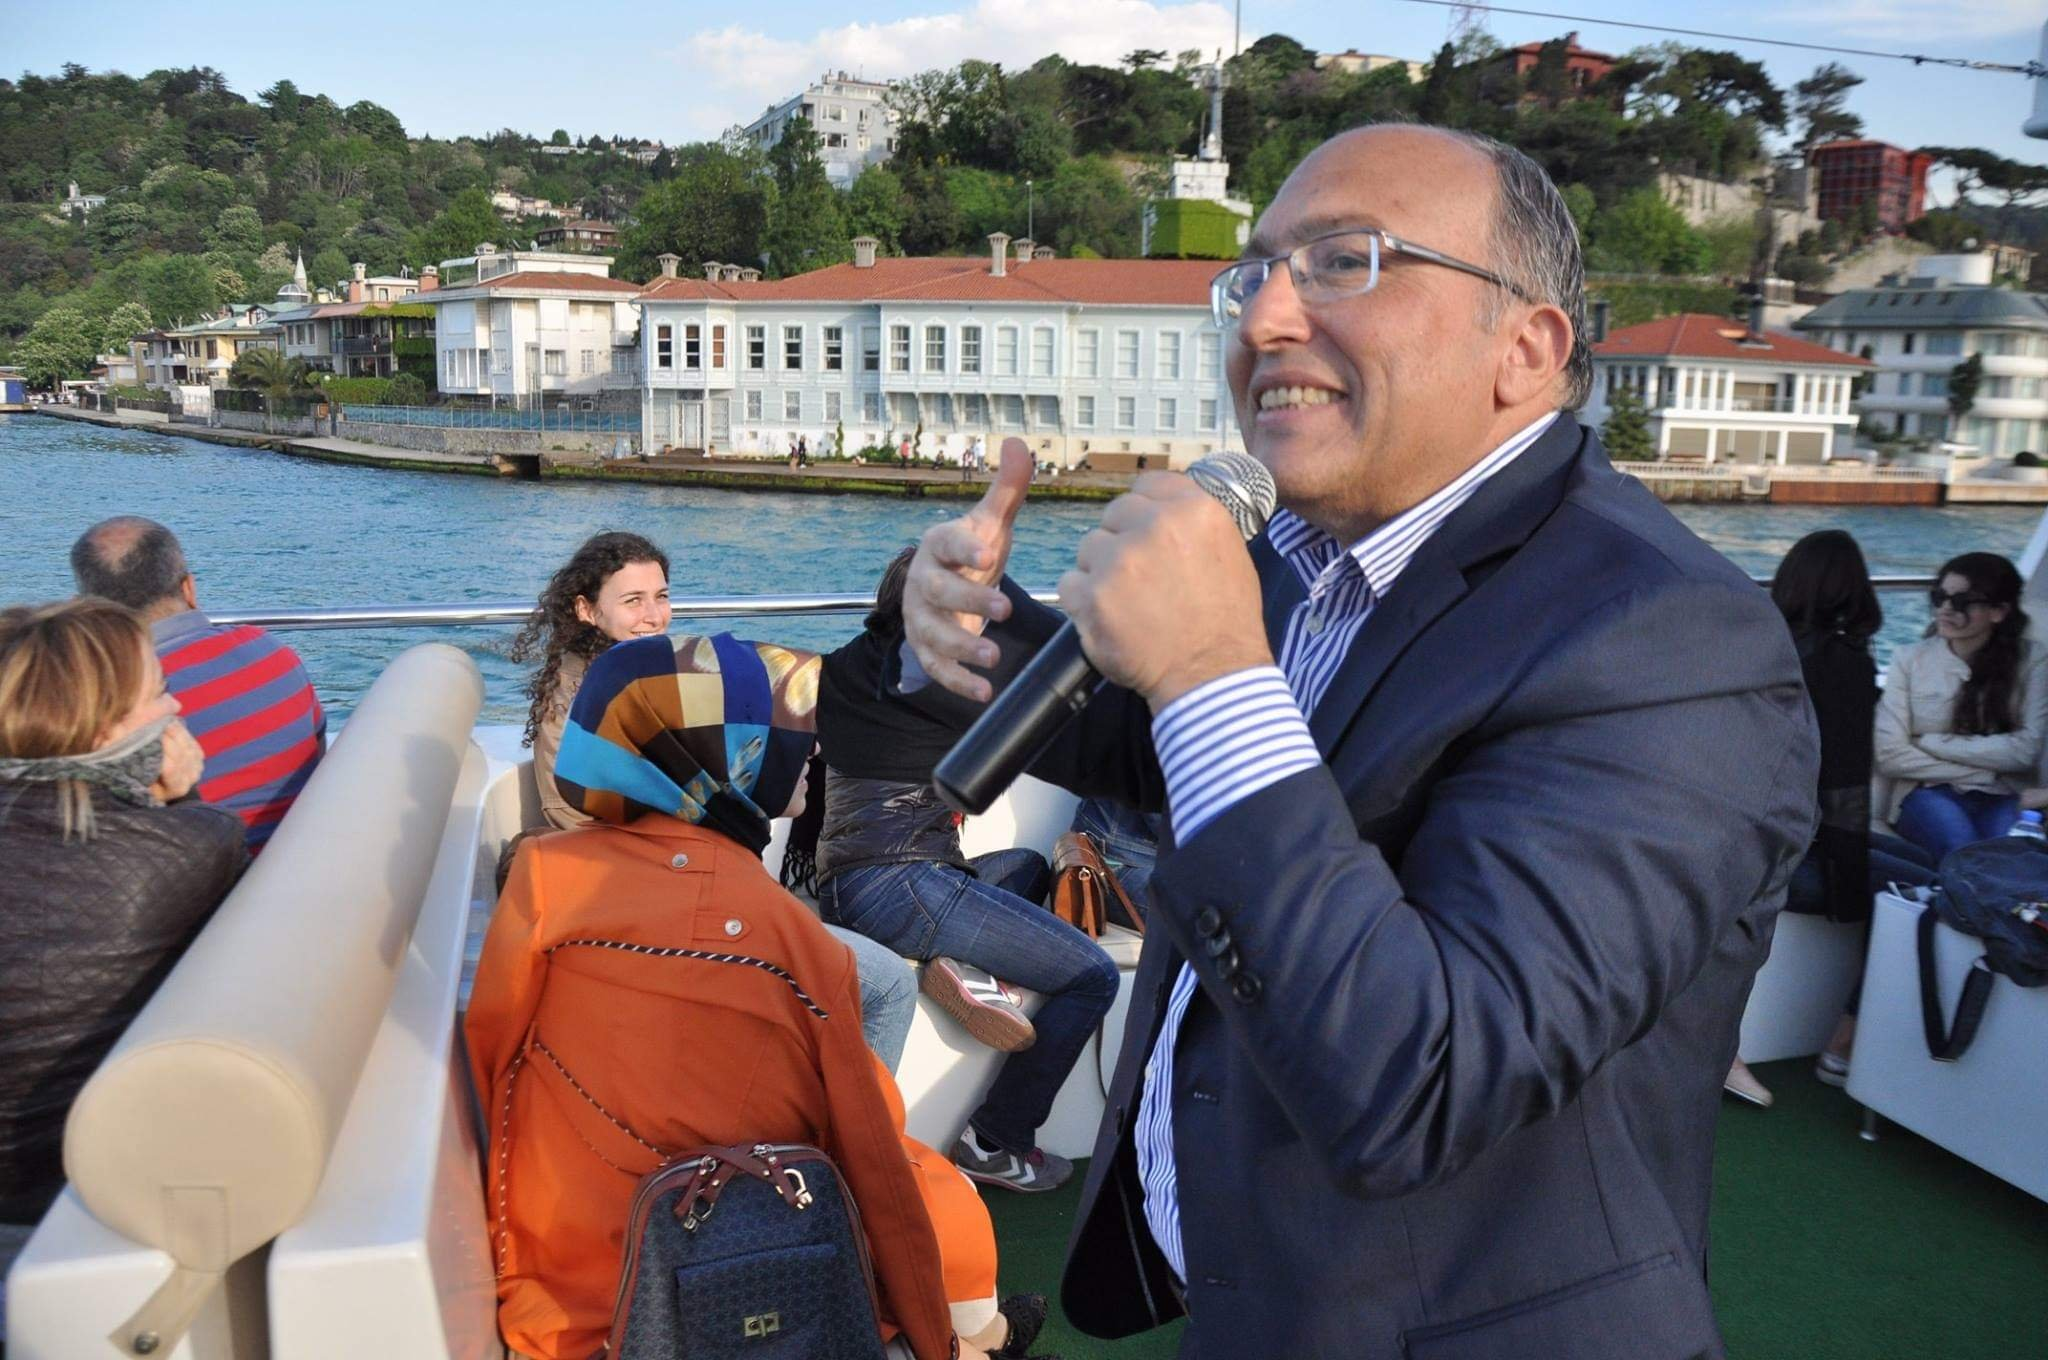 Ahmet Haluk Dursun speaks during a travel tour where he tells about the history of Istanbul and the metropolis' mansions at a ferry at the Bosporus, Istanbul, Turkey, April 29, 2016. (Courtesy of Ferhat Küçük)